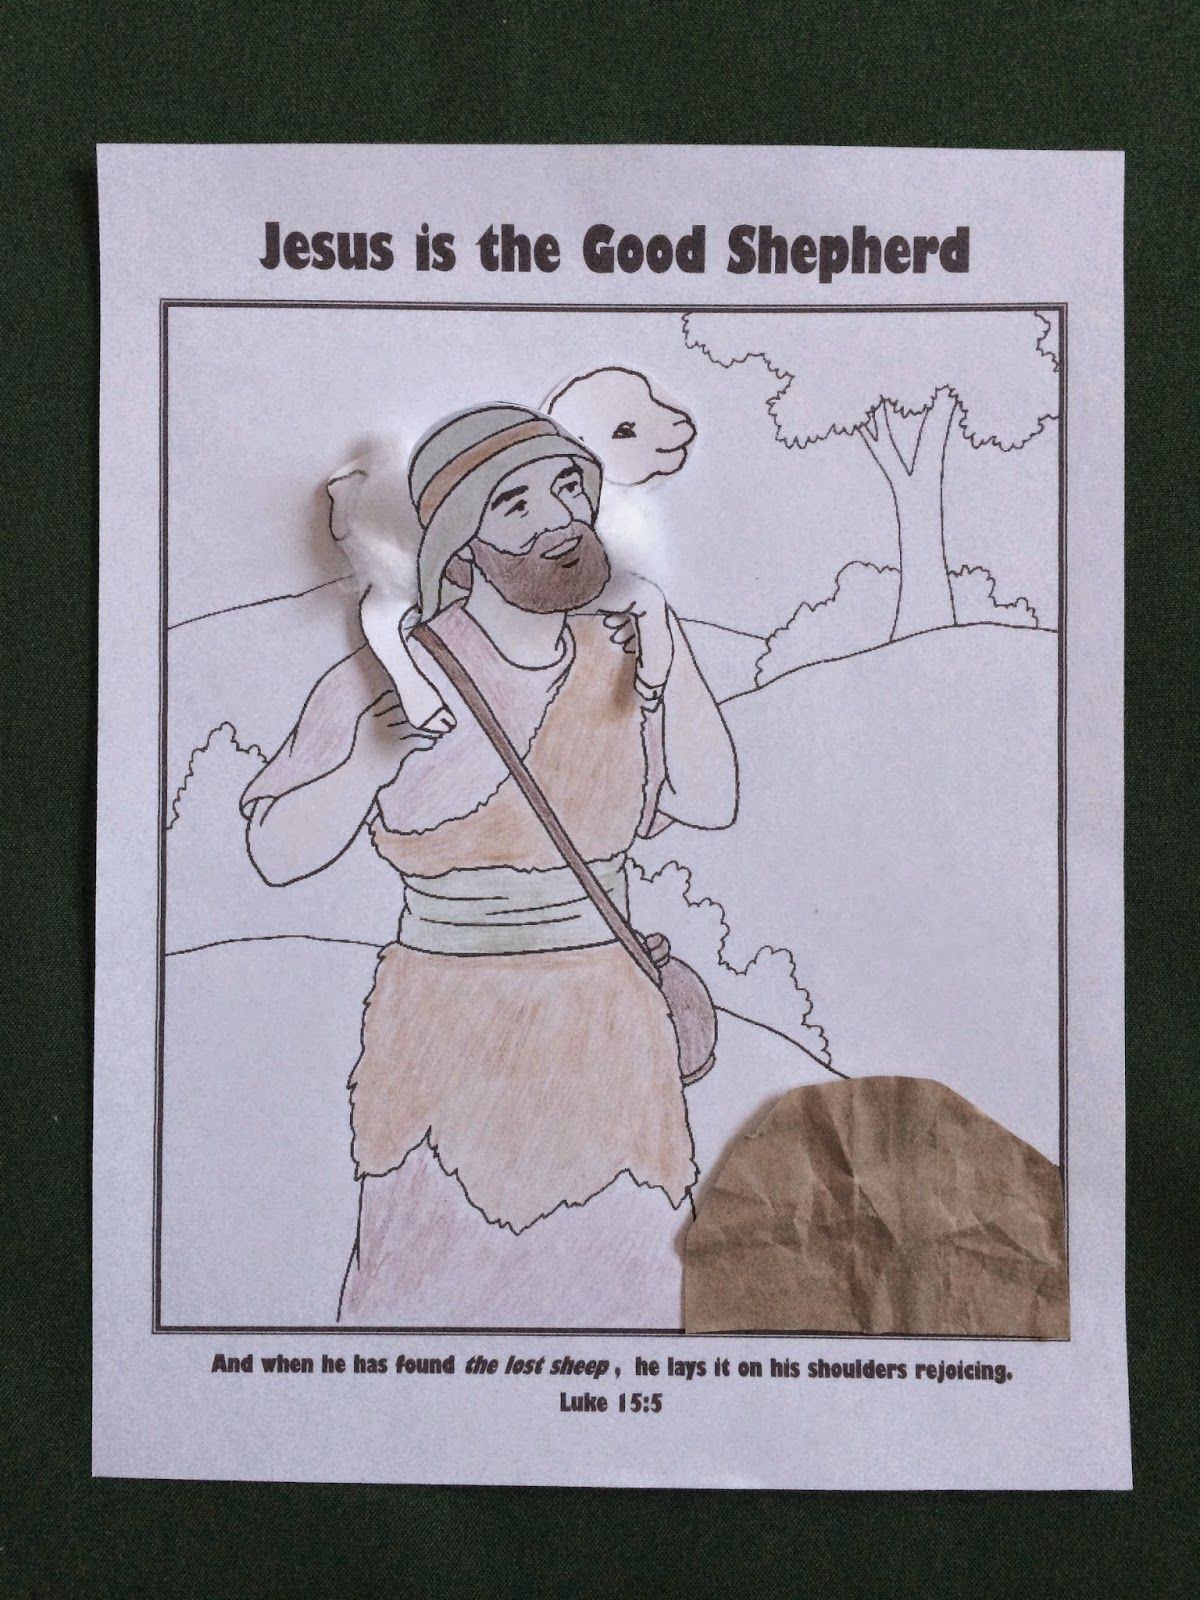 Interactive Coloring Page Craft For The Parables Of Lost Sheep And Jesus Good Shepherd Children Can Retell Story As They Move From